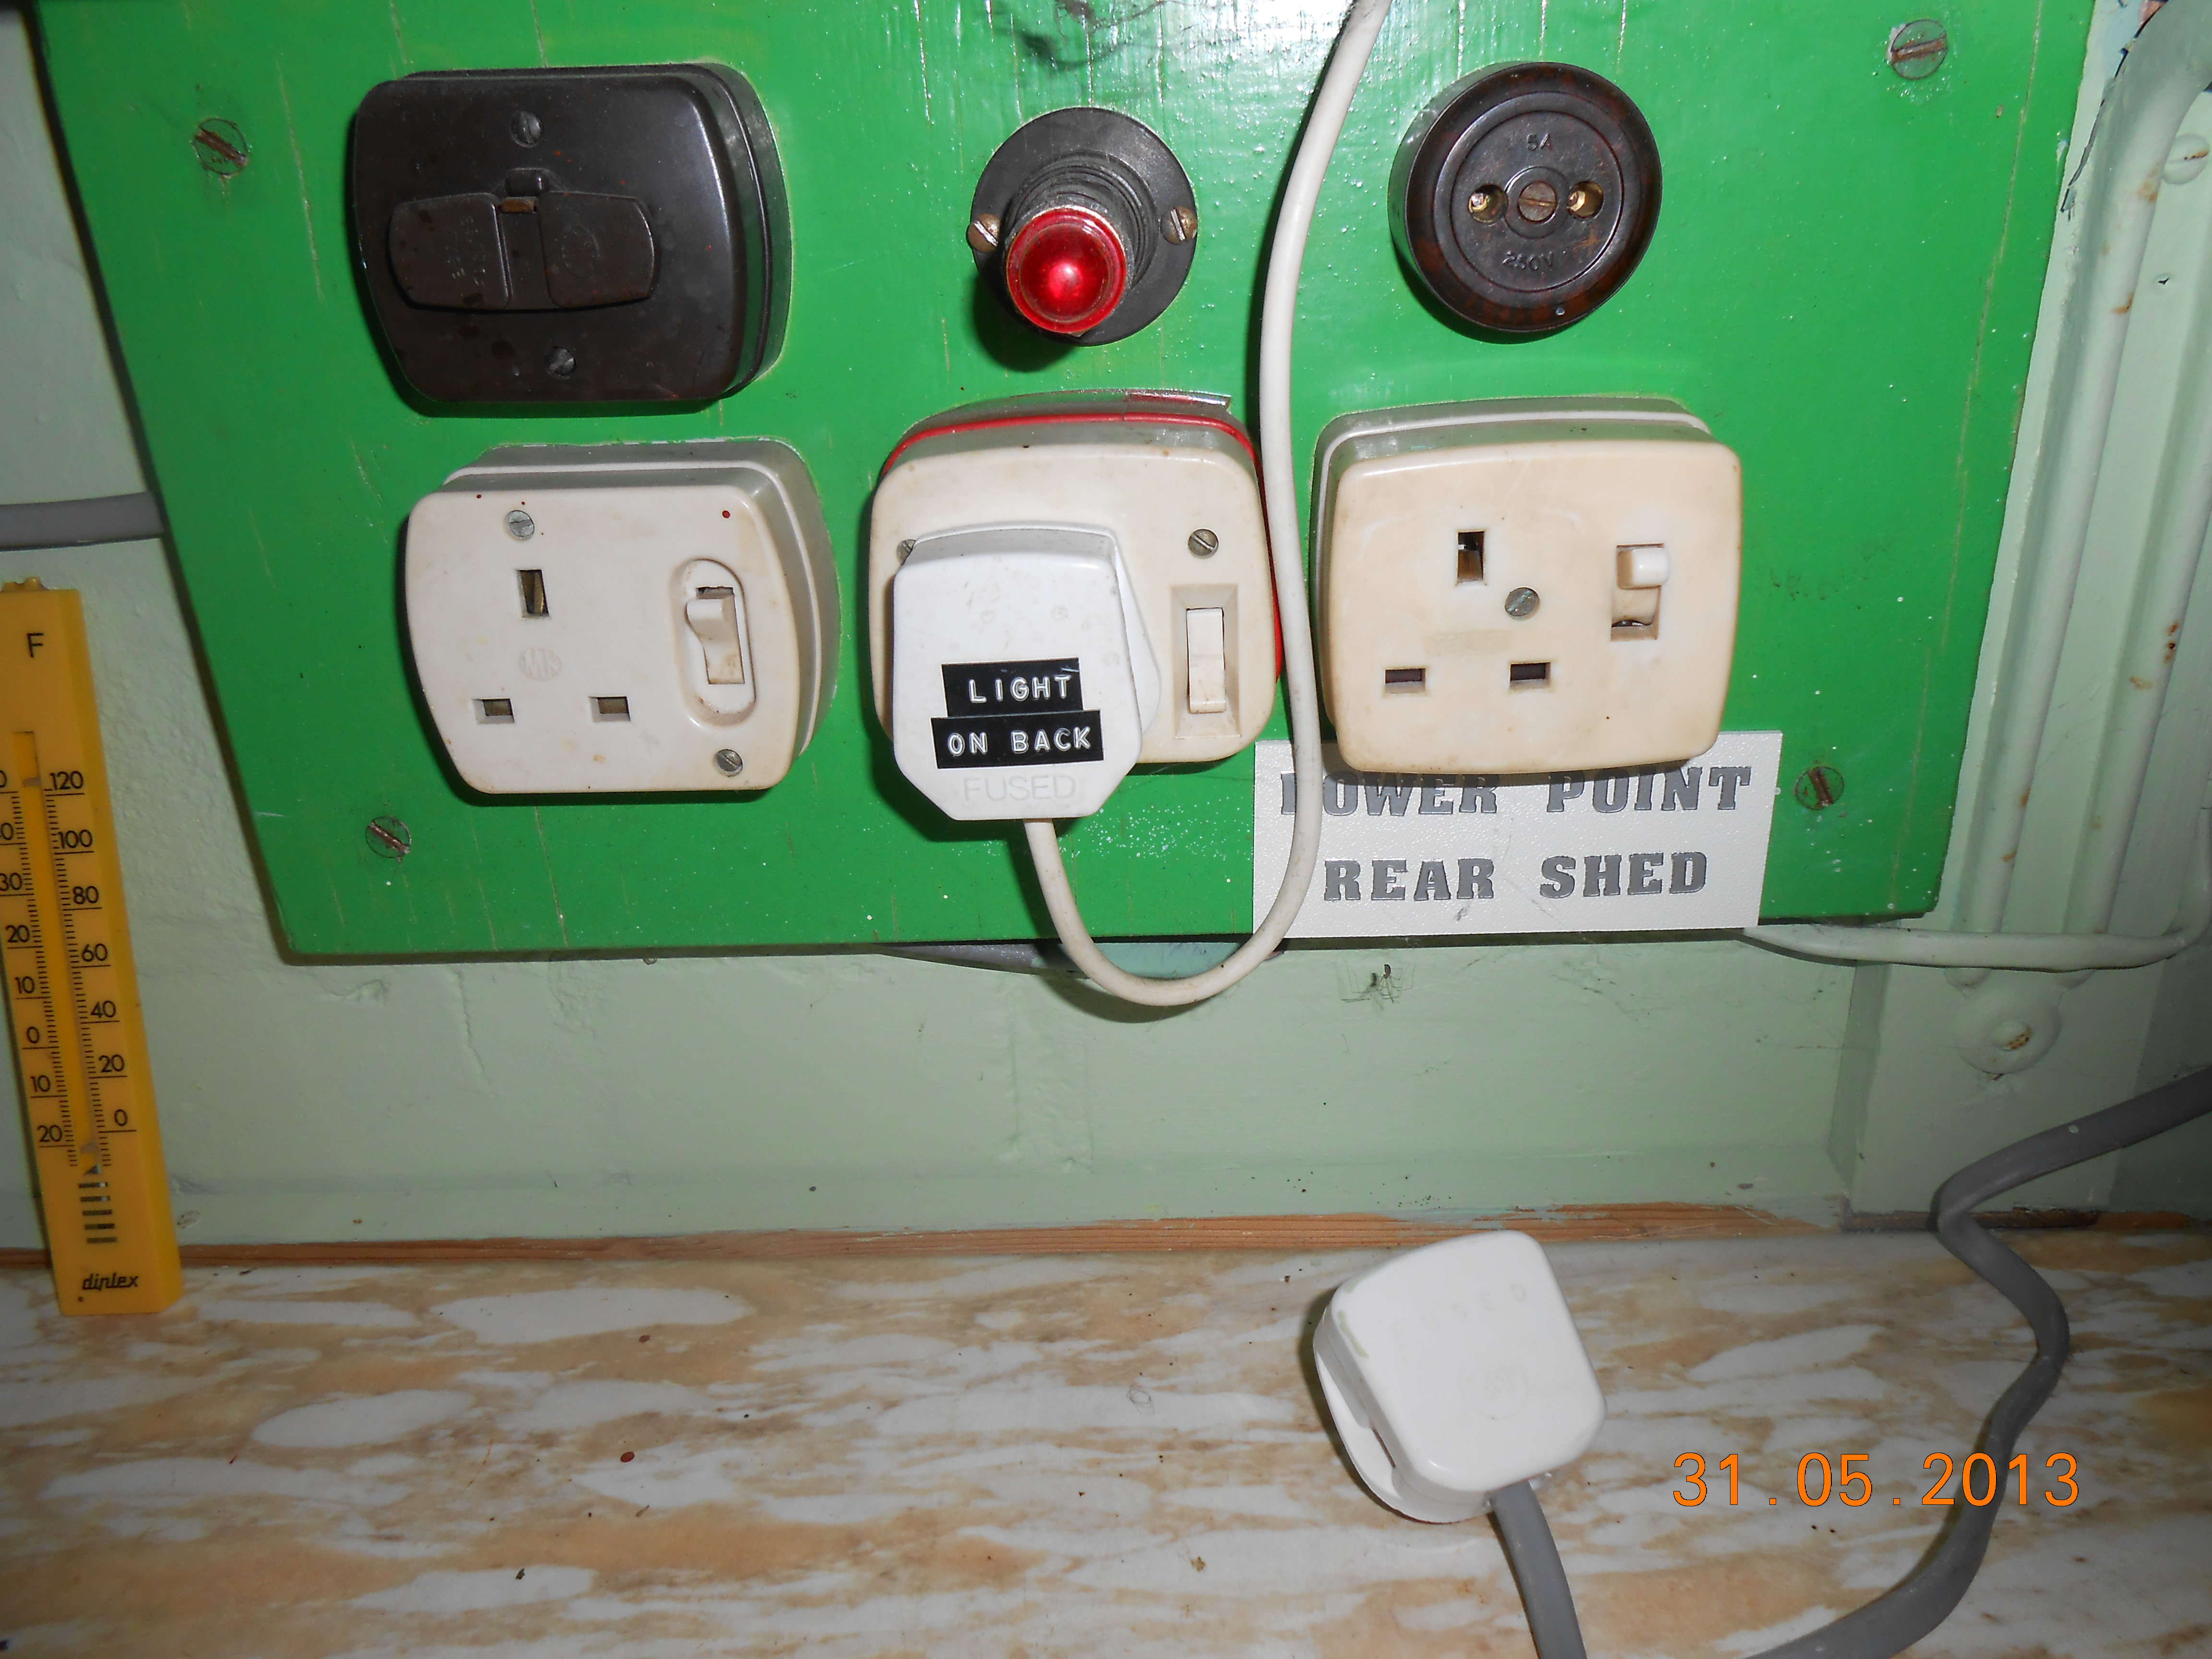 Check your electrics